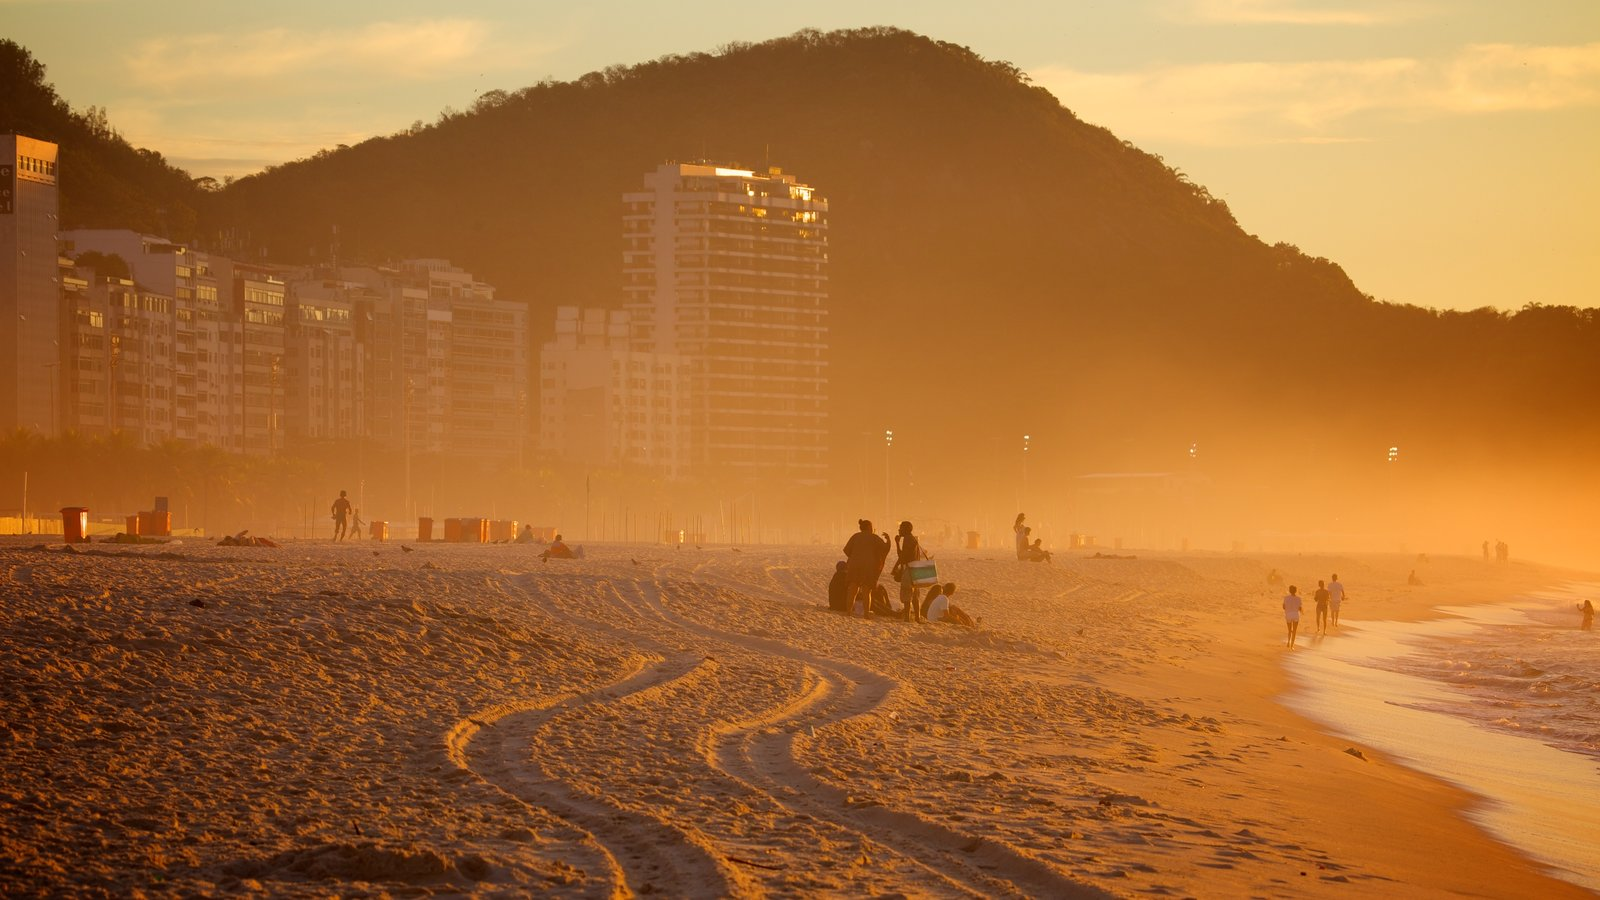 Copacabana Beach featuring a sandy beach and a sunset